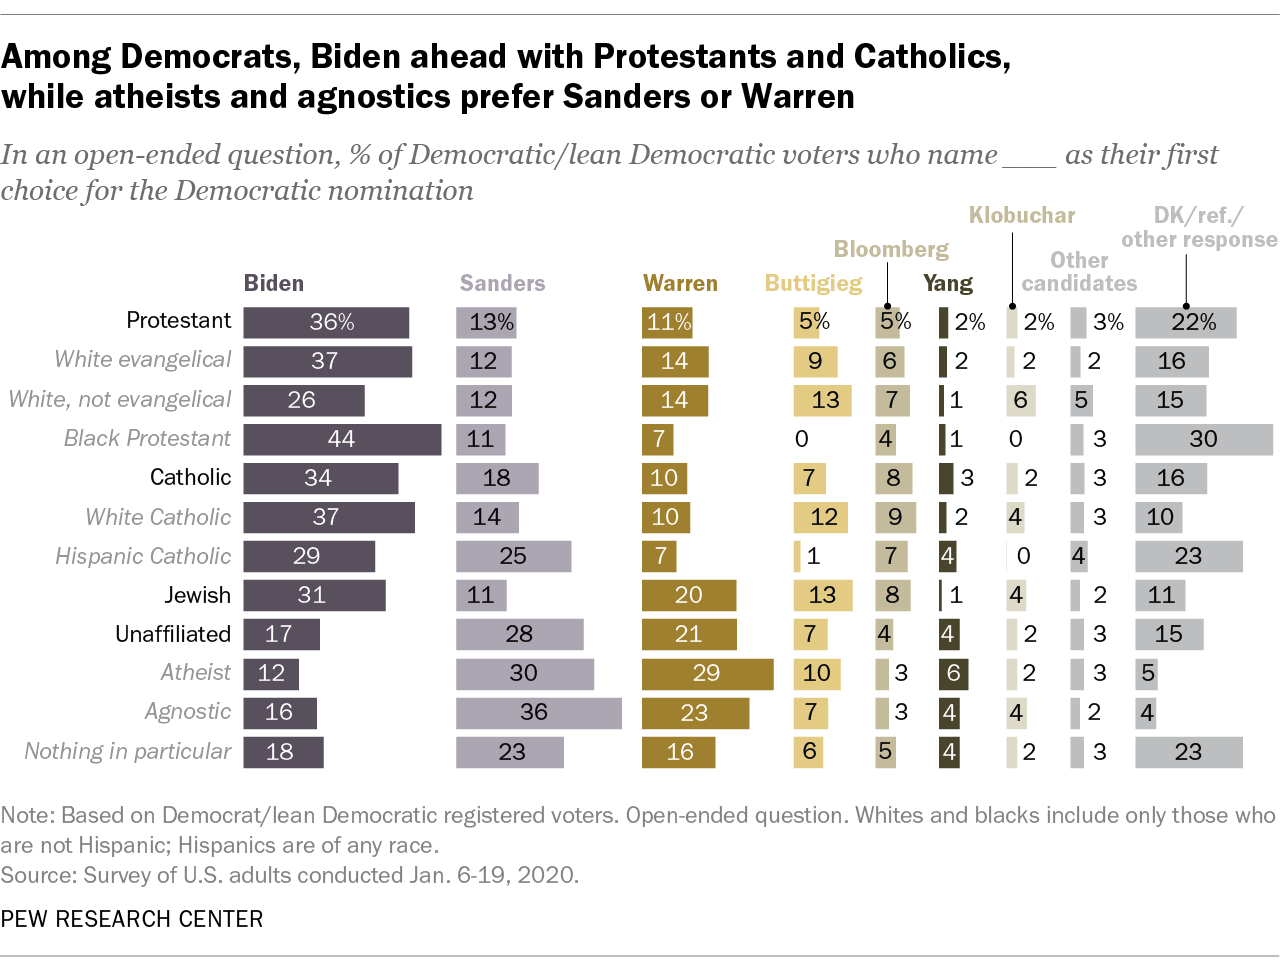 Among Democrats, Biden ahead with Protestants and Catholics, while atheists and agnostics prefer Sanders or Warren